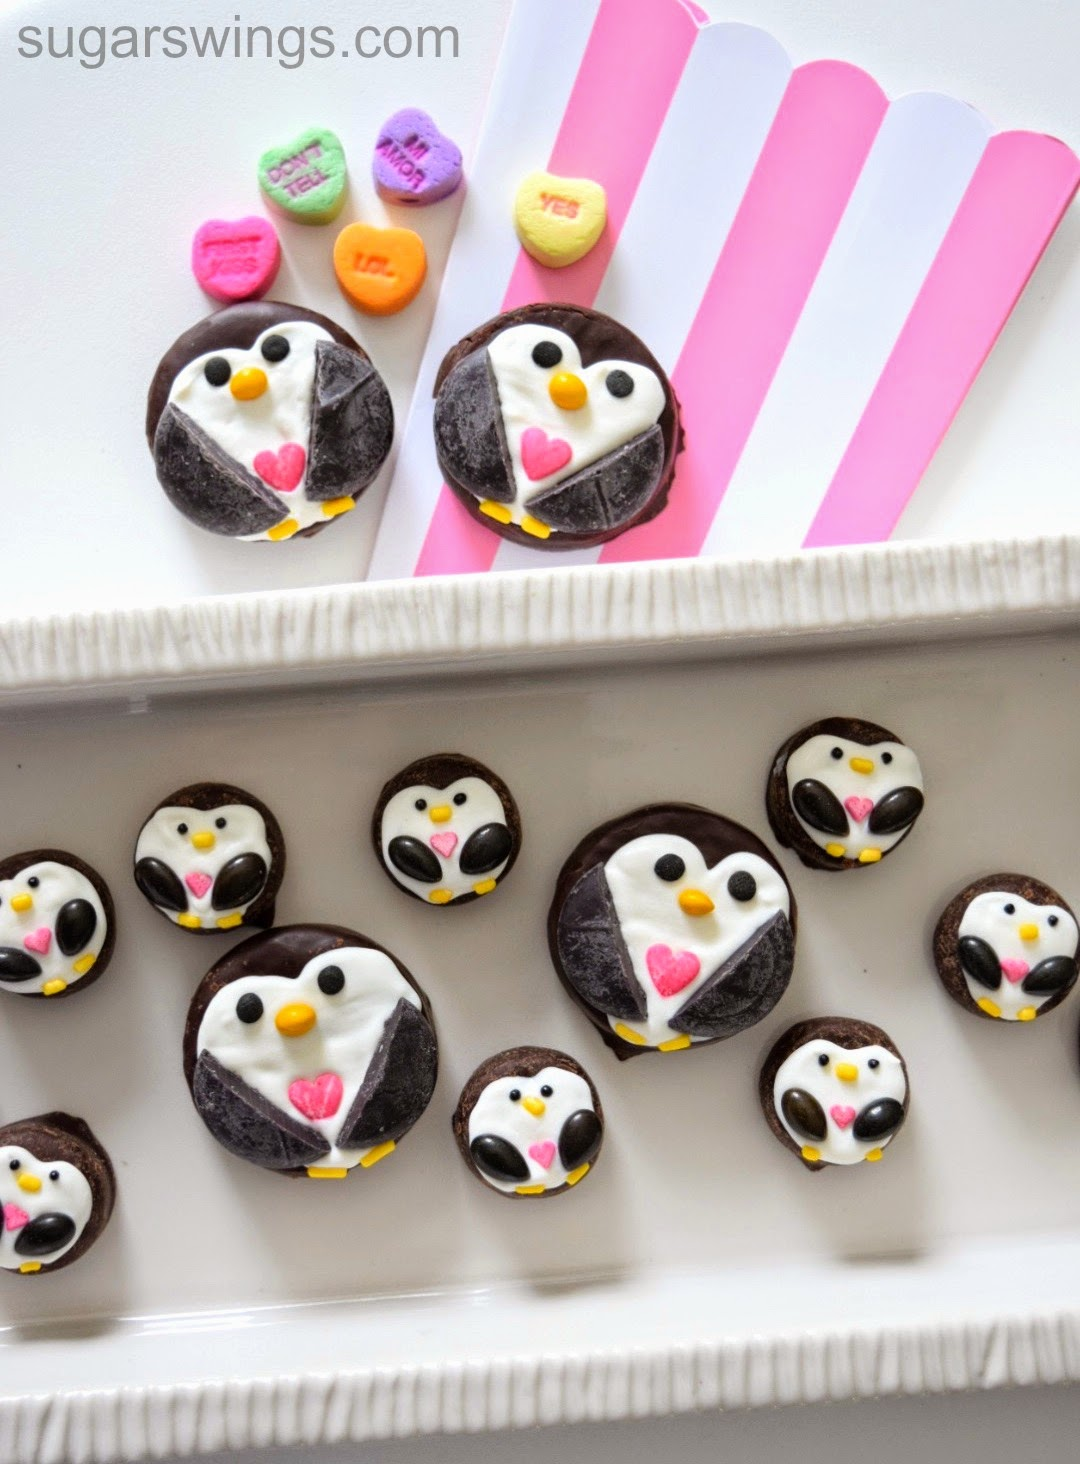 sugar swings serve some penguin valentines day candies